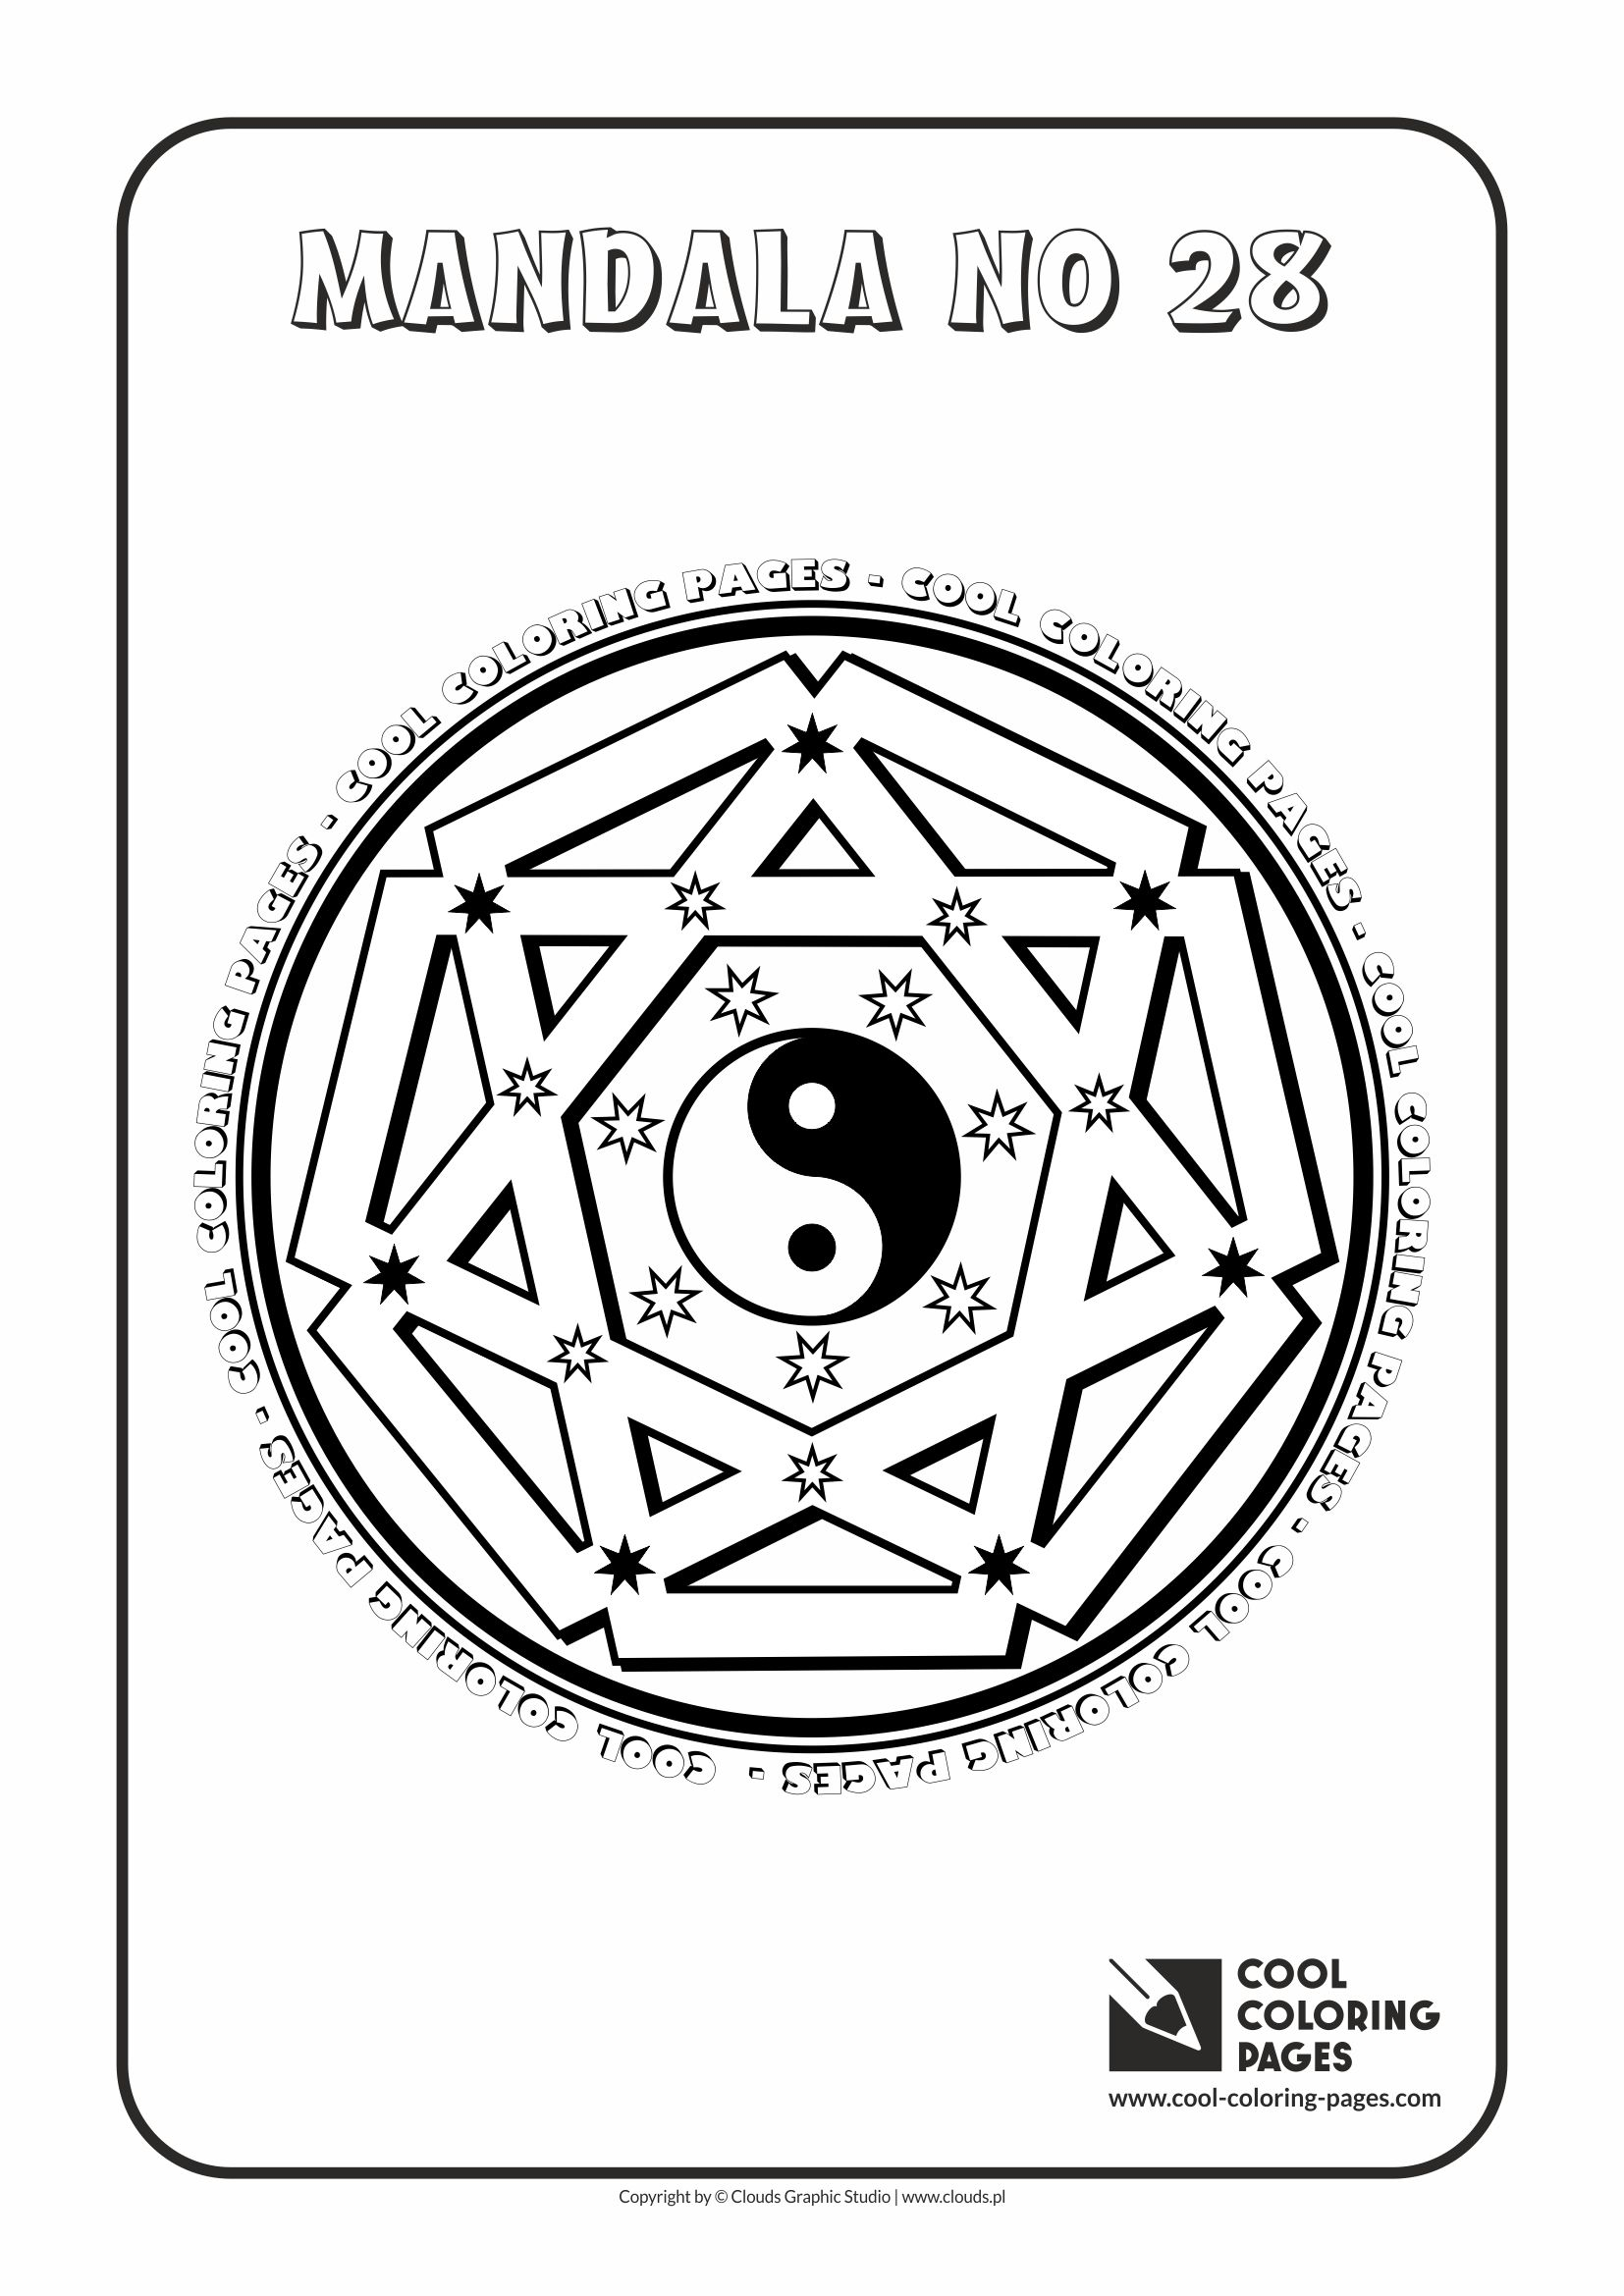 Cool Coloring Pages - Mandalas / Mandala no 28